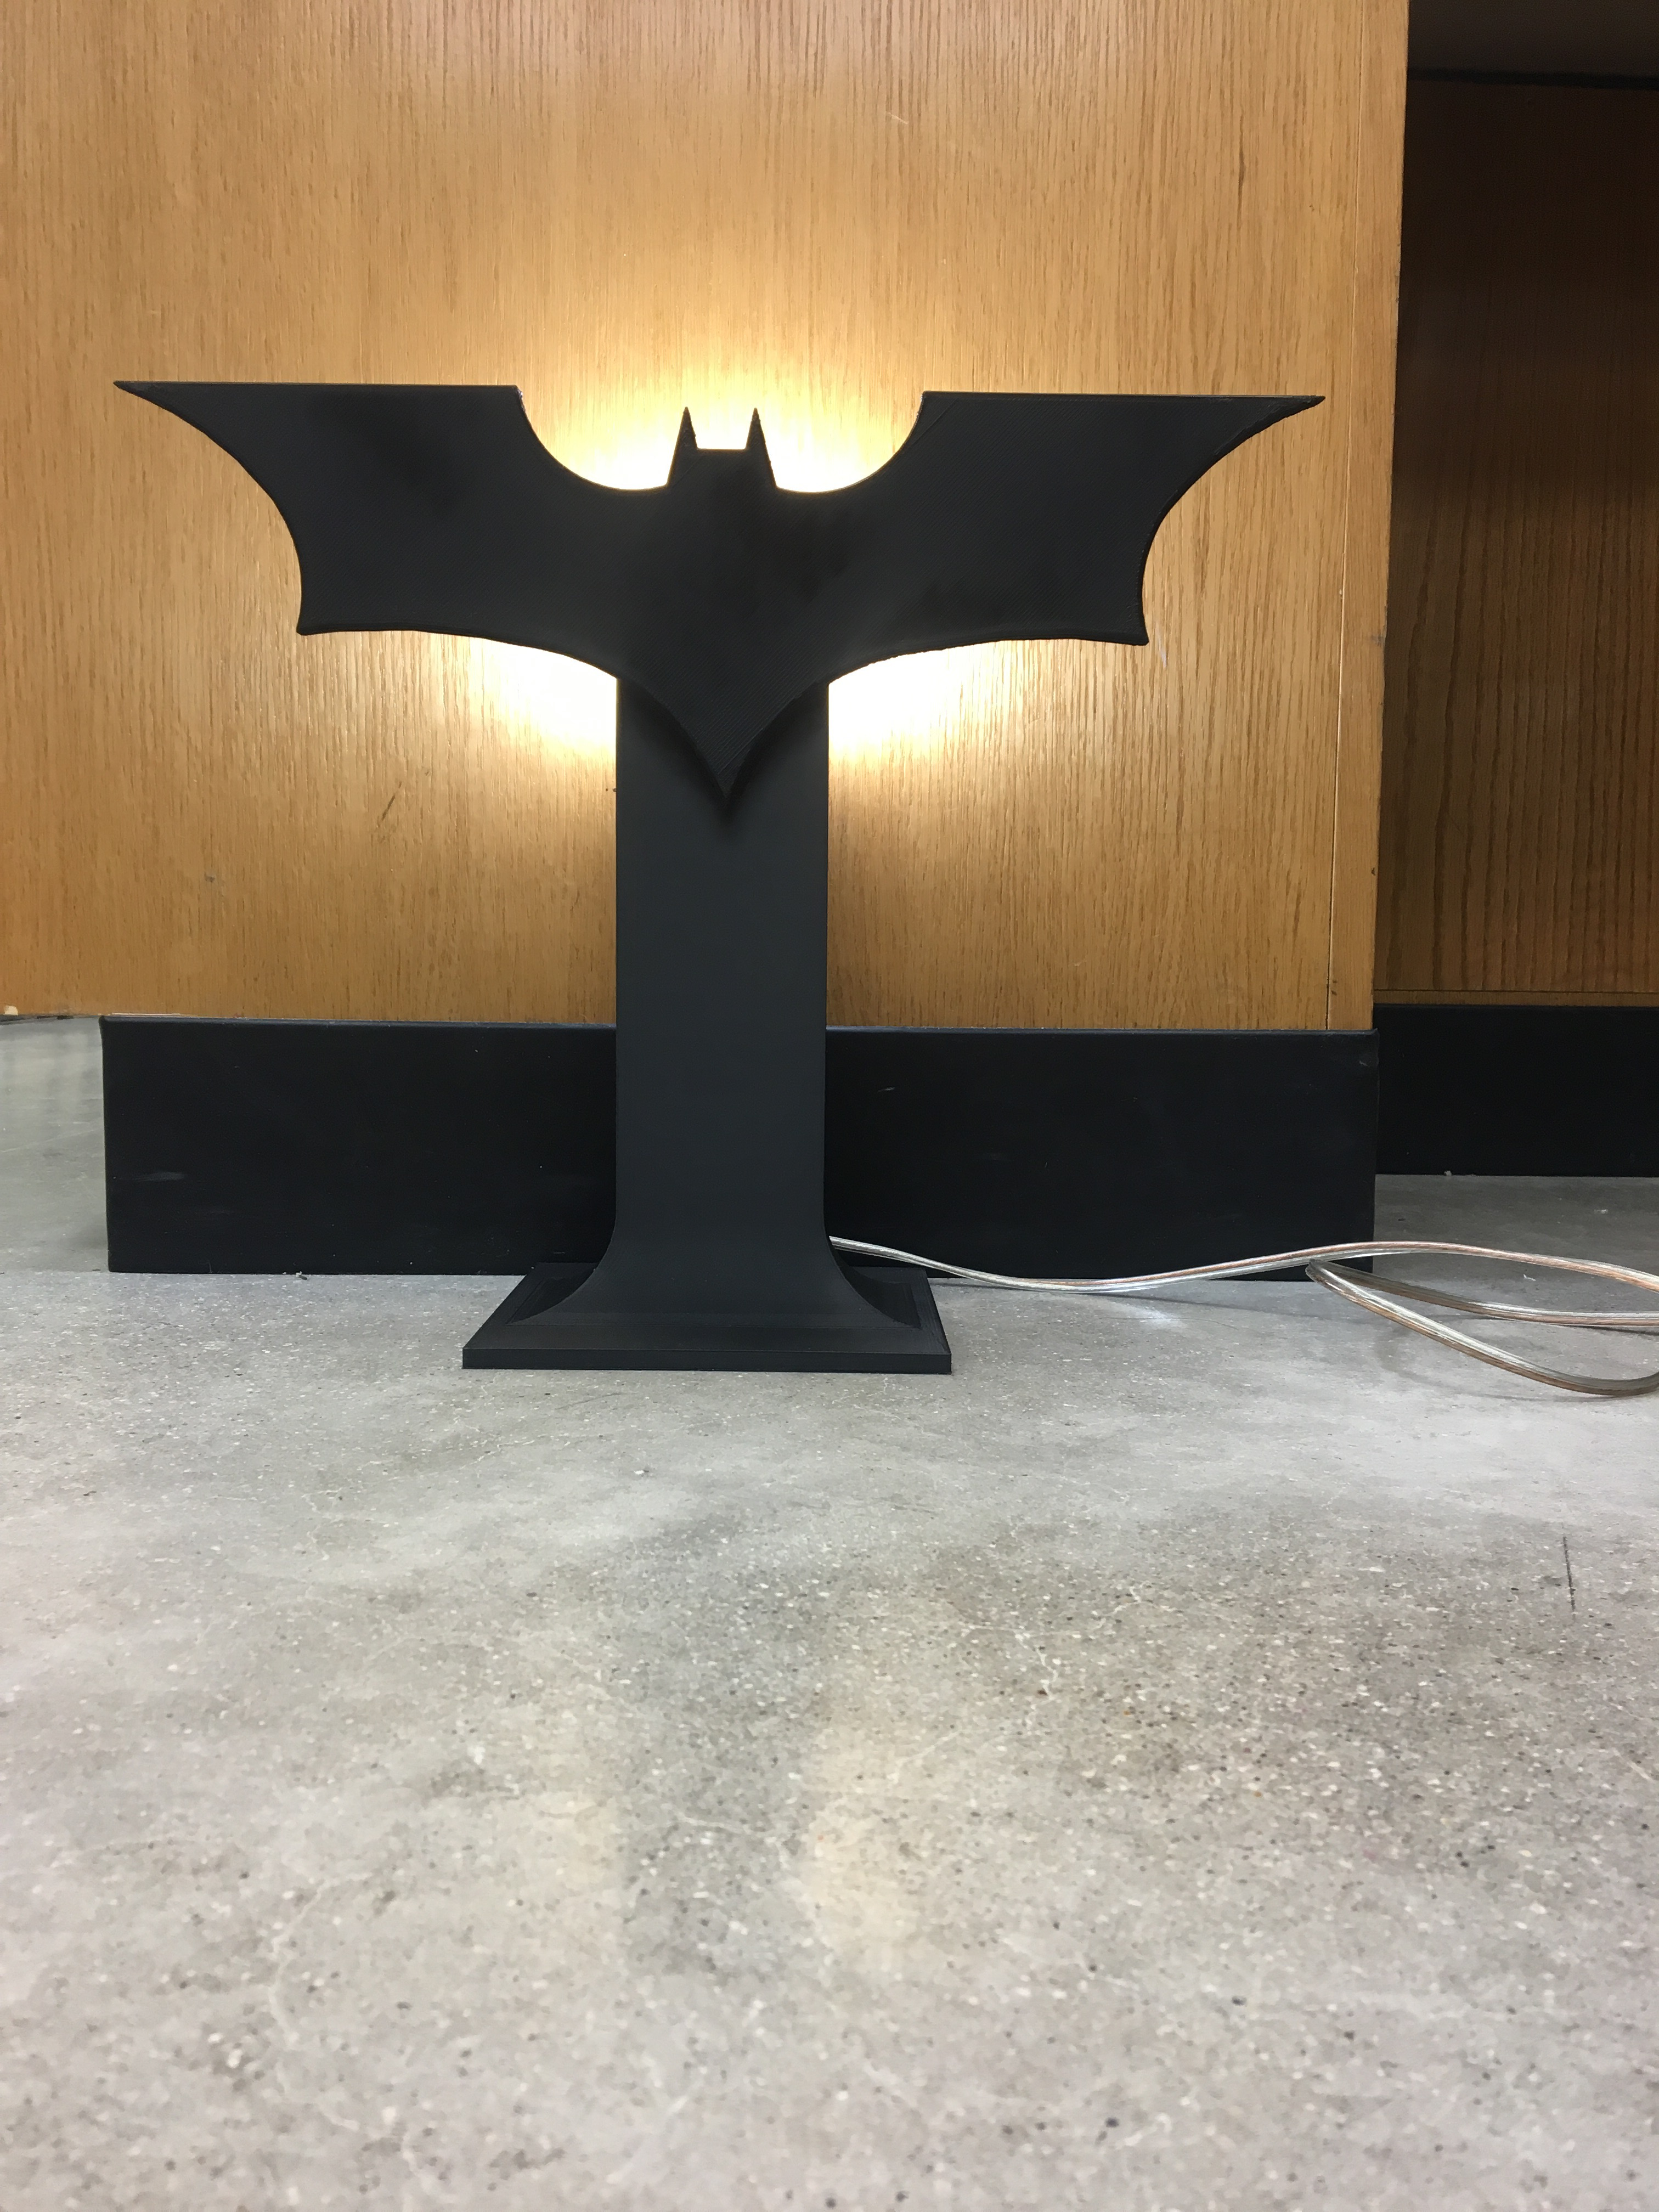 Picture of Connecting the Light Socket and Base Stand to the Batman Logo (Finishing Up)